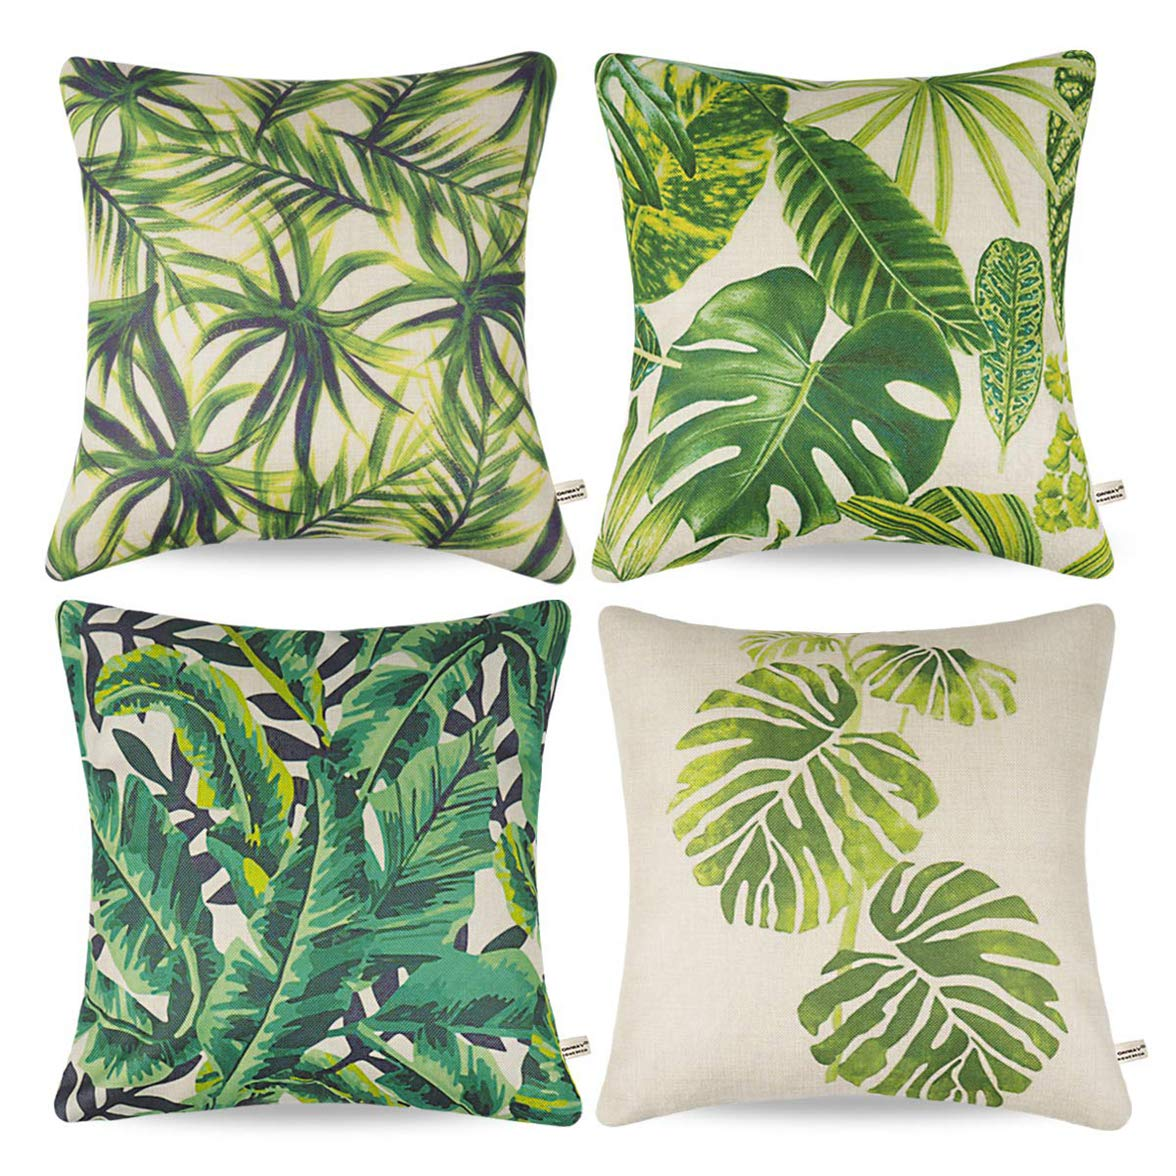 Rylablue Set Of 4 Pillow Cases Palm Leaf Tropical Party Ations Summer Green Bohemian Throw Pillowcase Cover Cushion Case Home Decor Walmart Canada